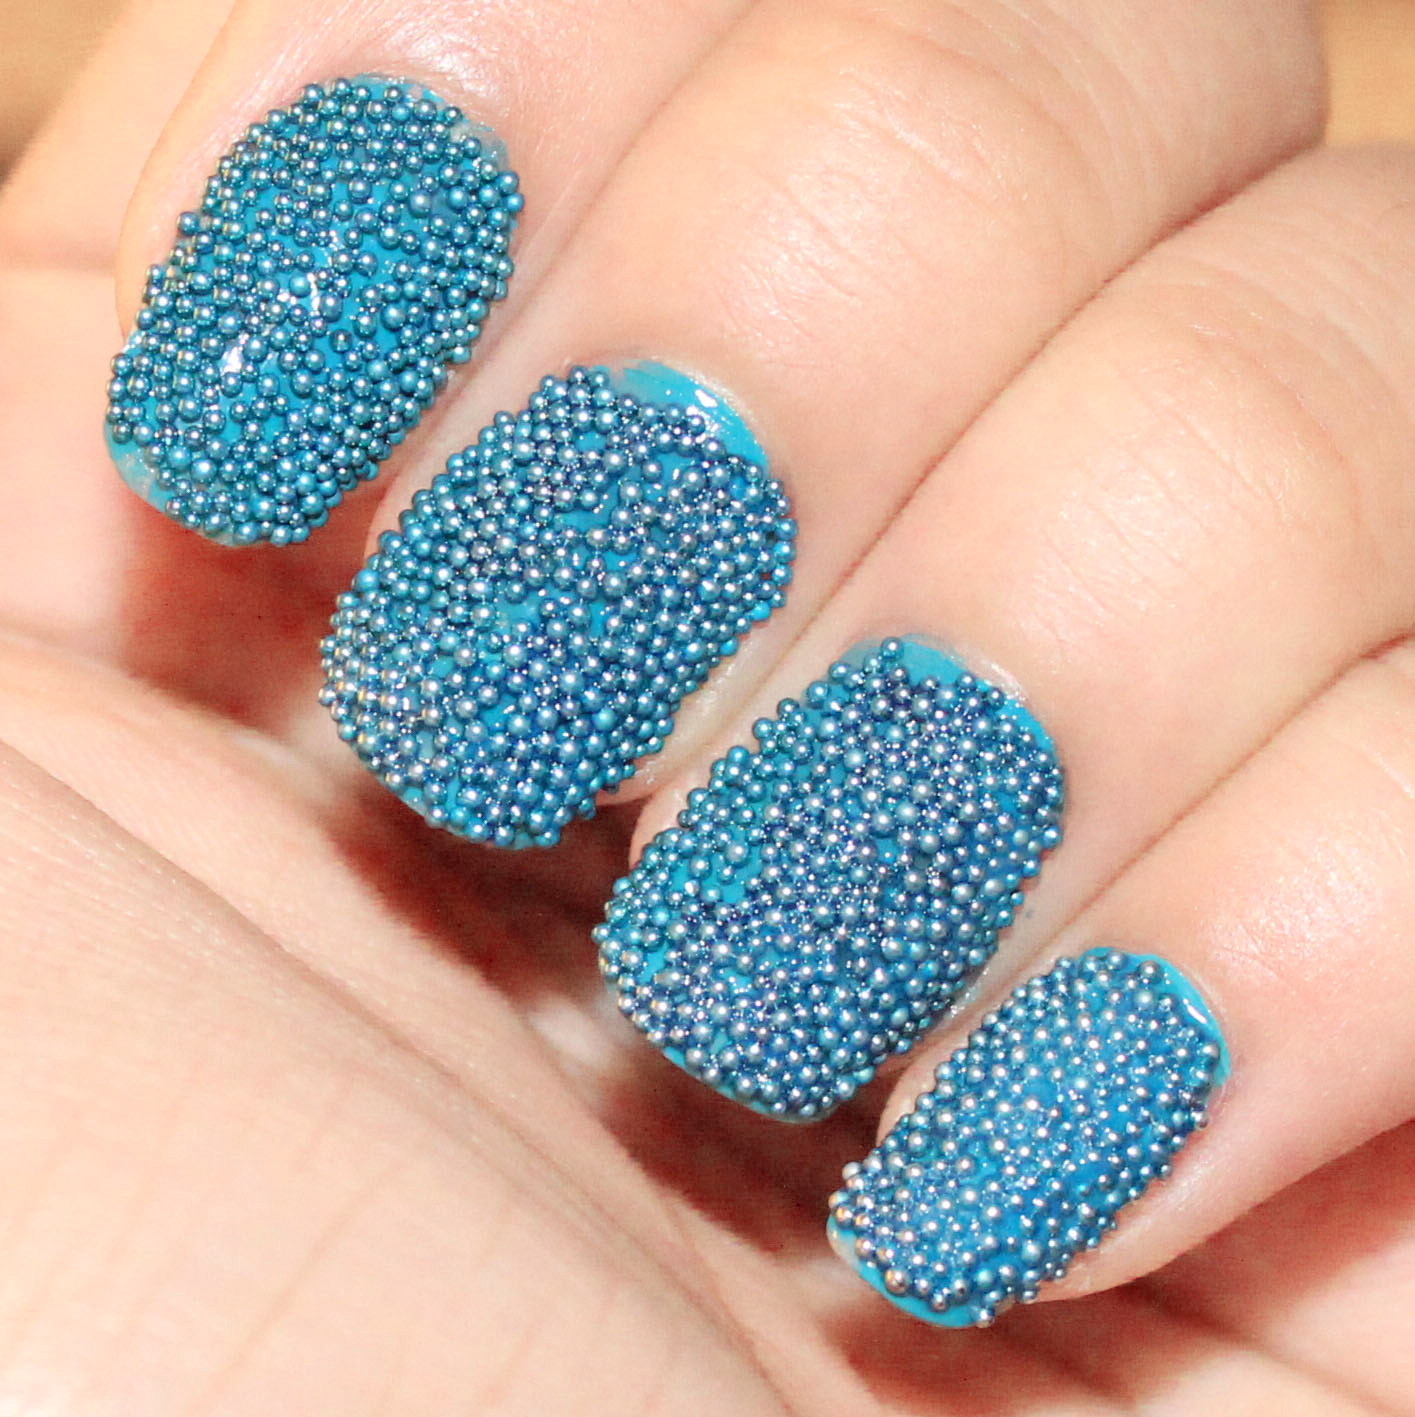 Caviar Nails: 4 Nail Trends To Try This Summer